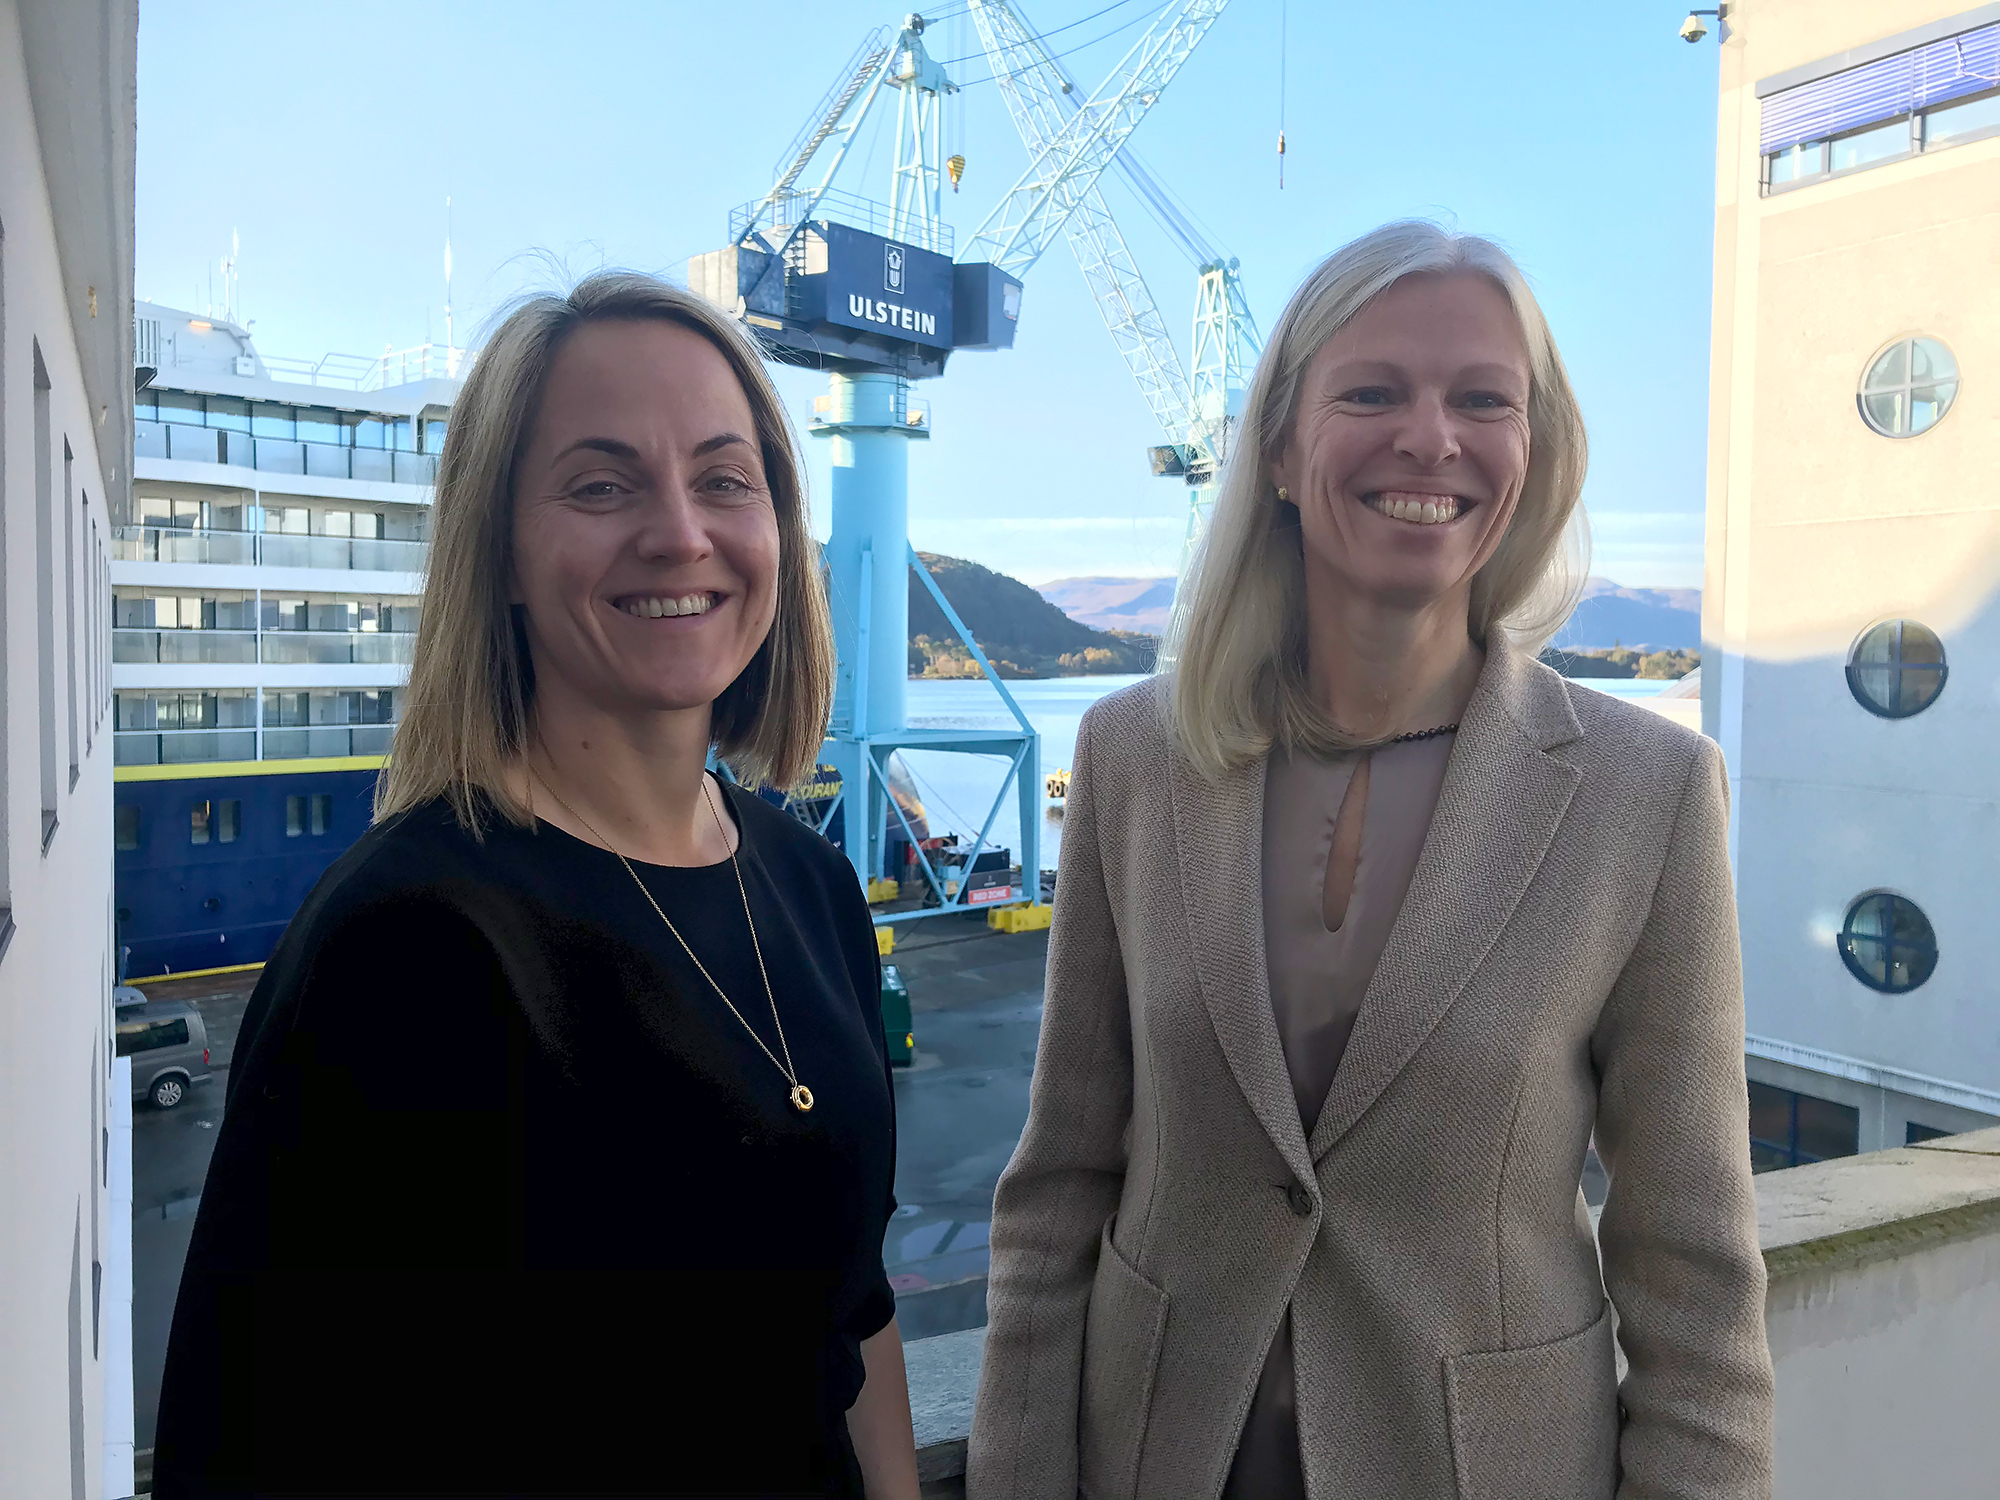 Cathrine Marti (left) and Gunvor Ulstein.